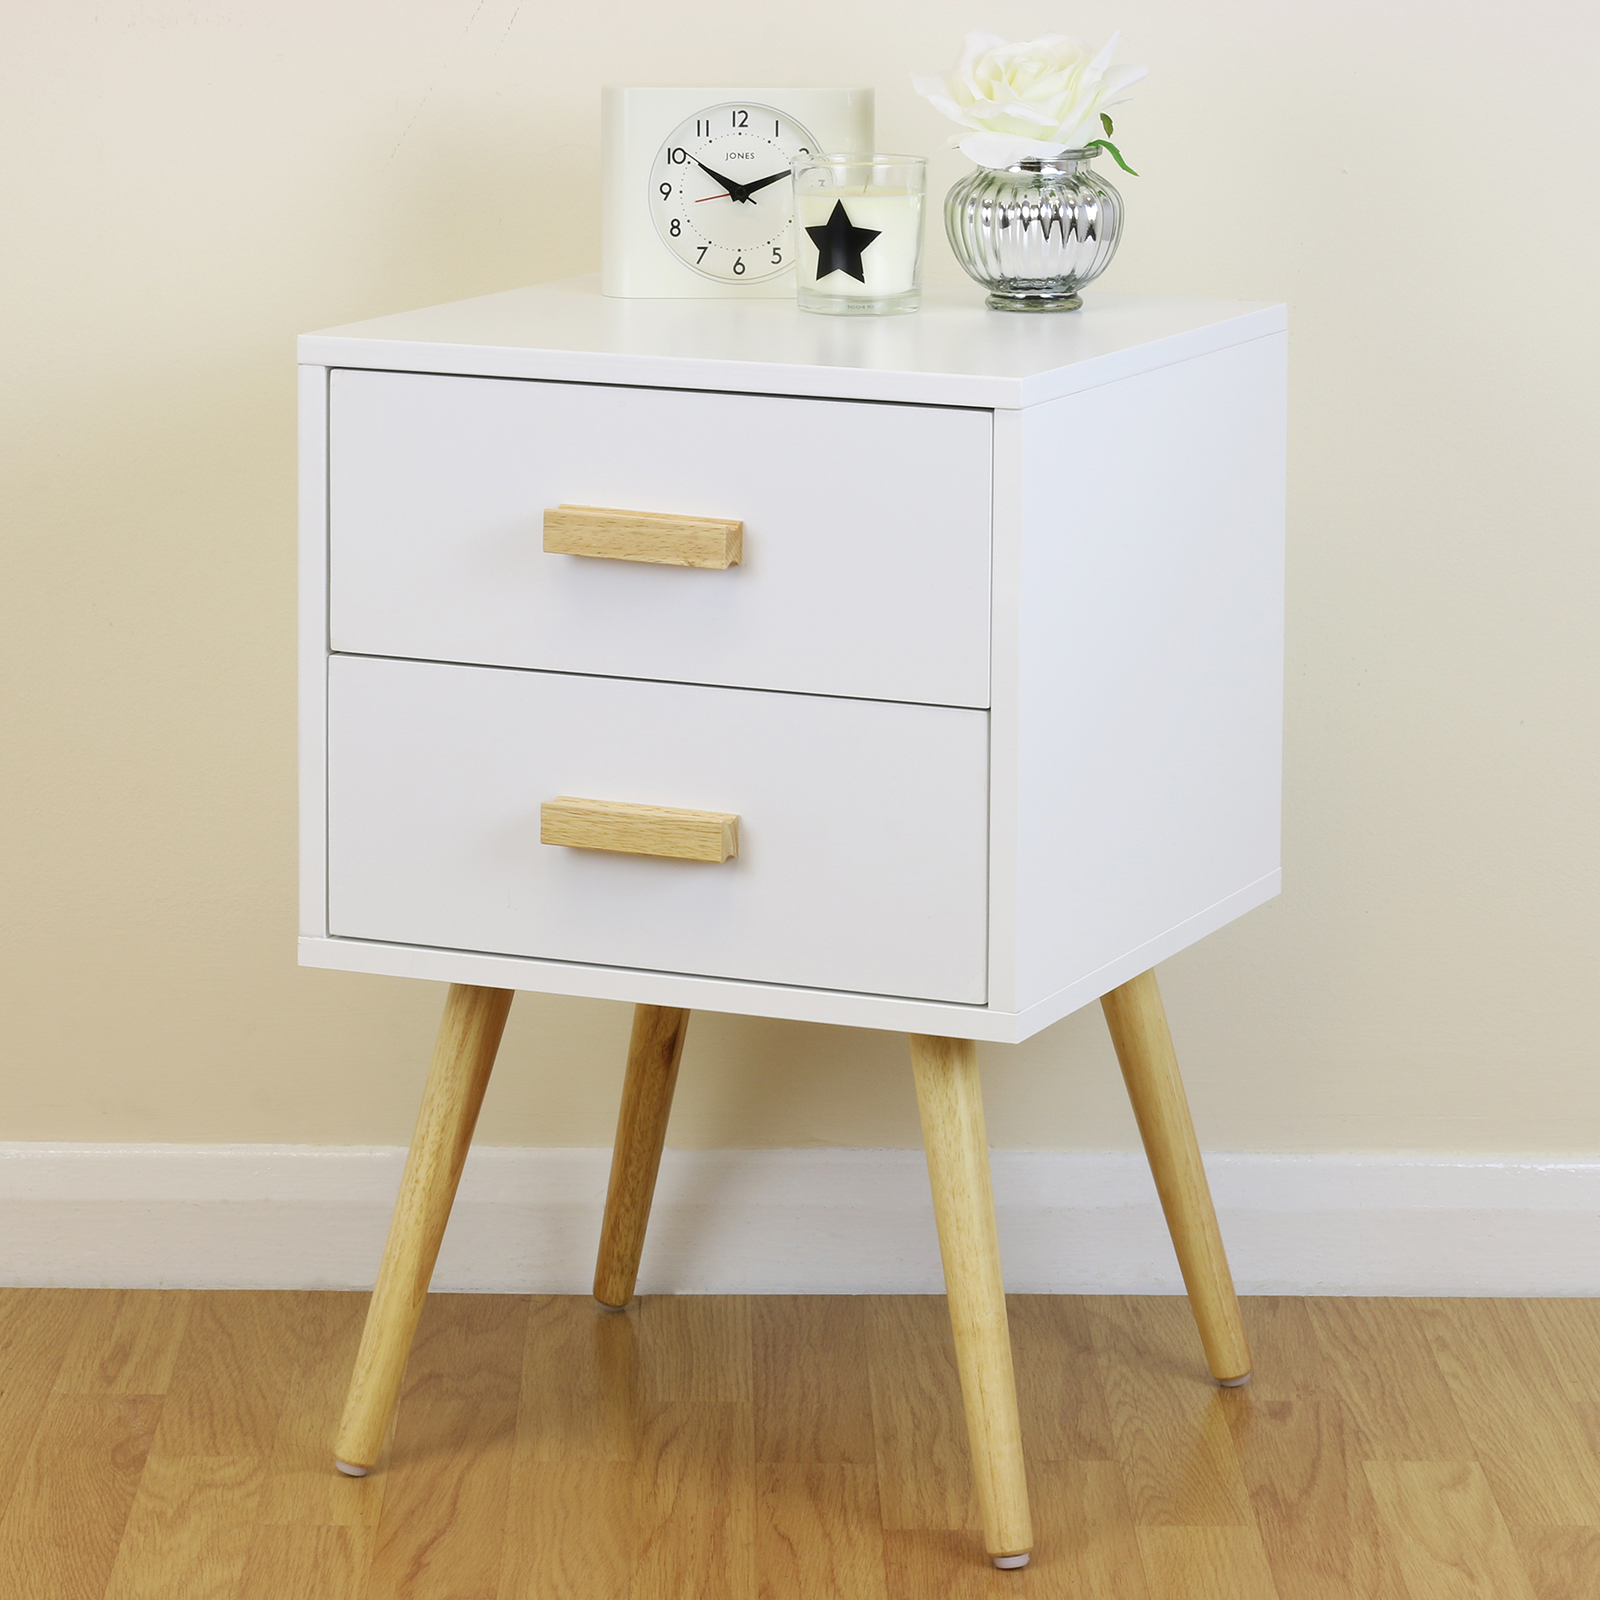 White & Wood Retro Nightstand Side Cabinet/End Table